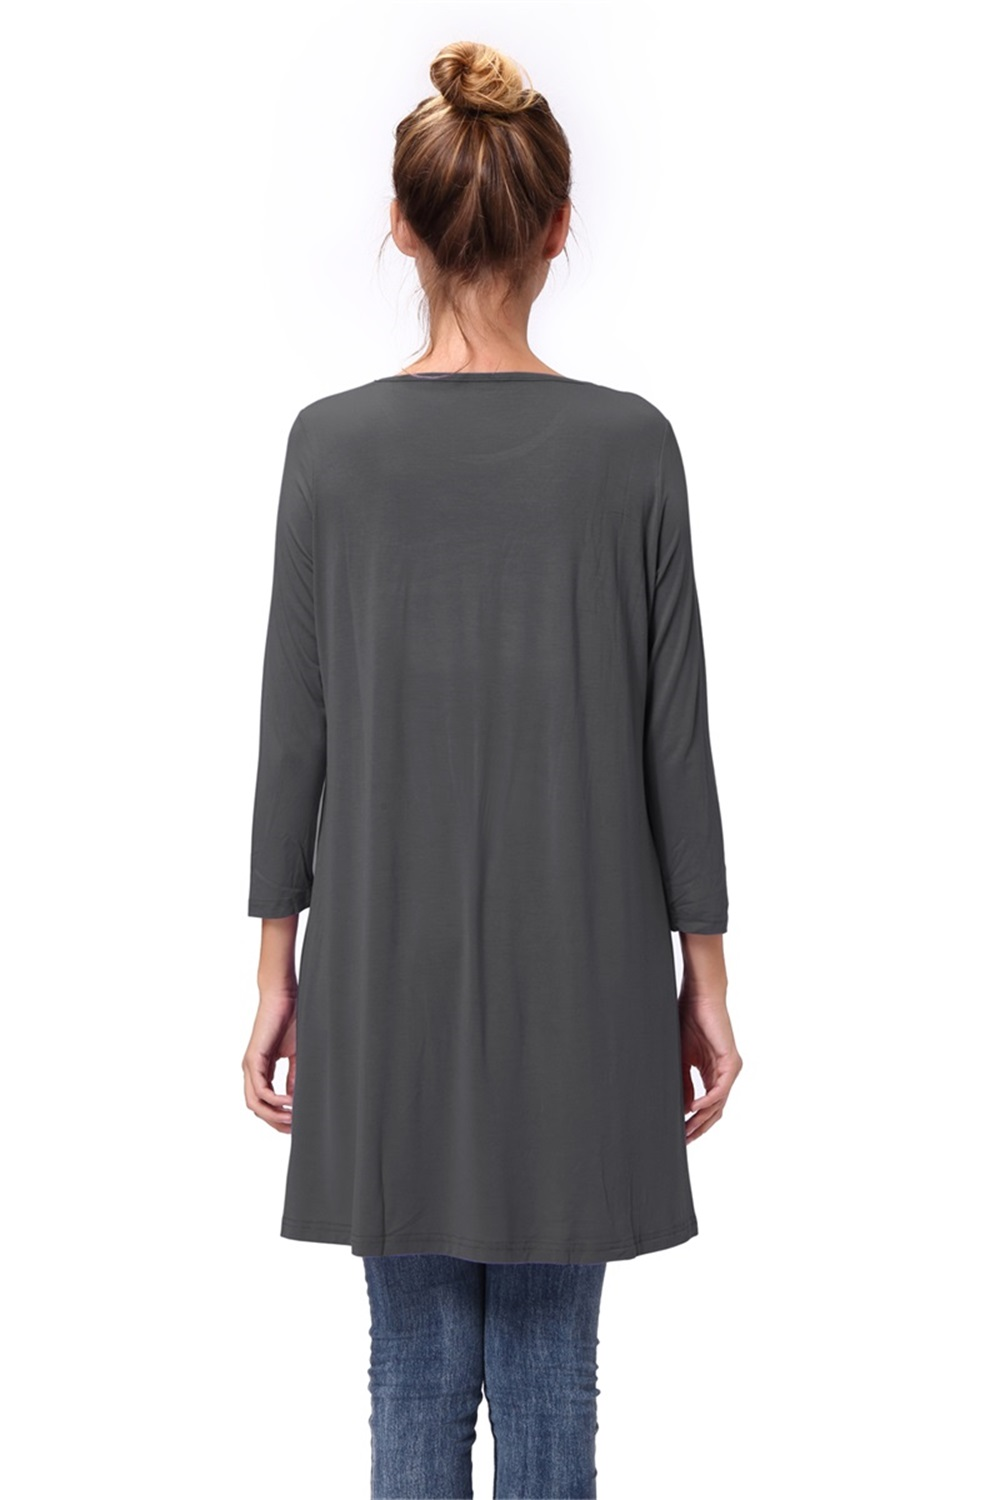 Women-039-s-Long-Tunic-Top-3-4-Sleeve-Dolman-Boat-Neck-USA-Dress-S-M-L-1X-2X-3X-PLUS thumbnail 26